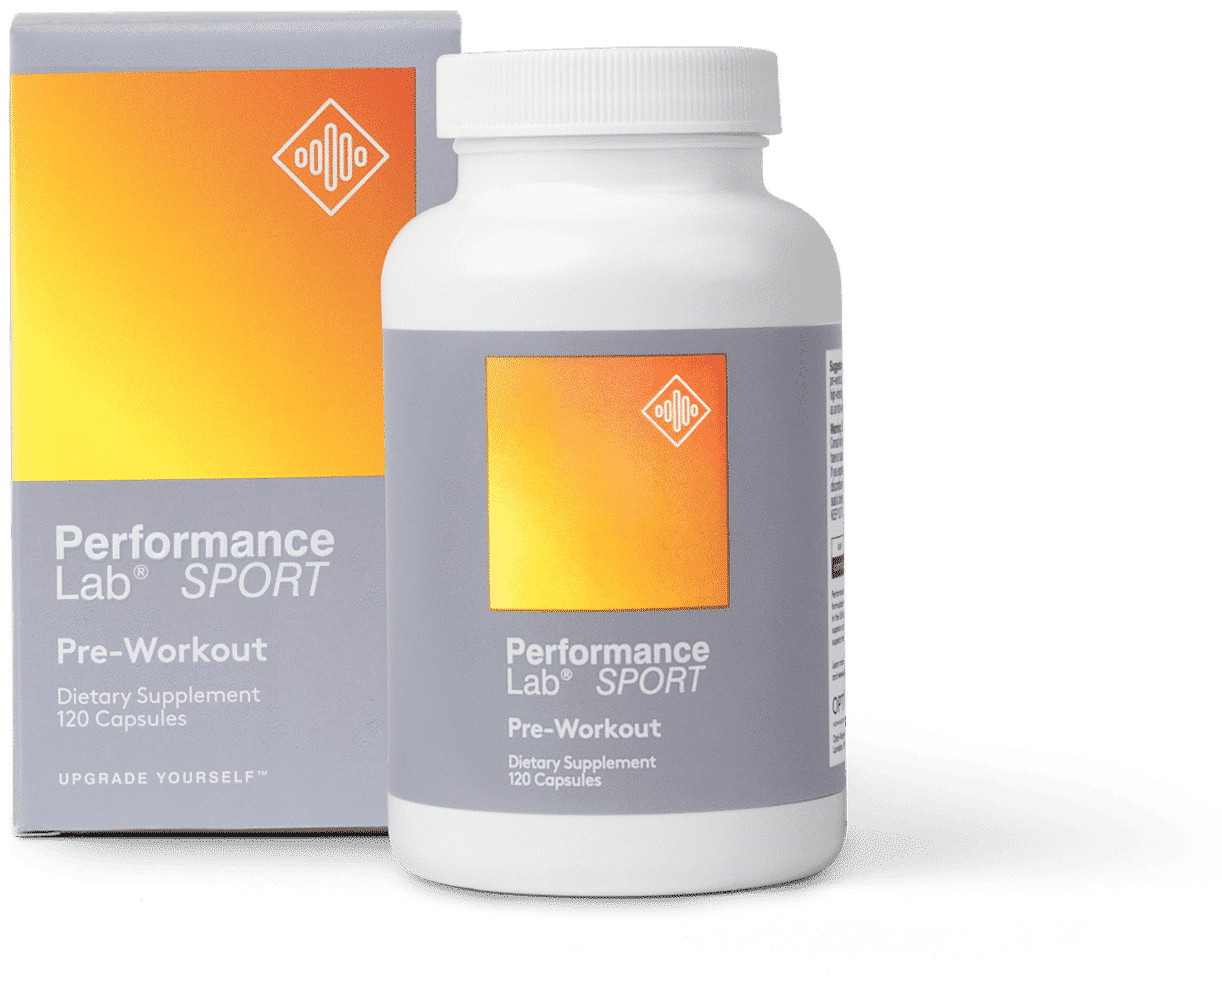 Performance Lab Sport Pre-workout - Best Pre-workout Supplement